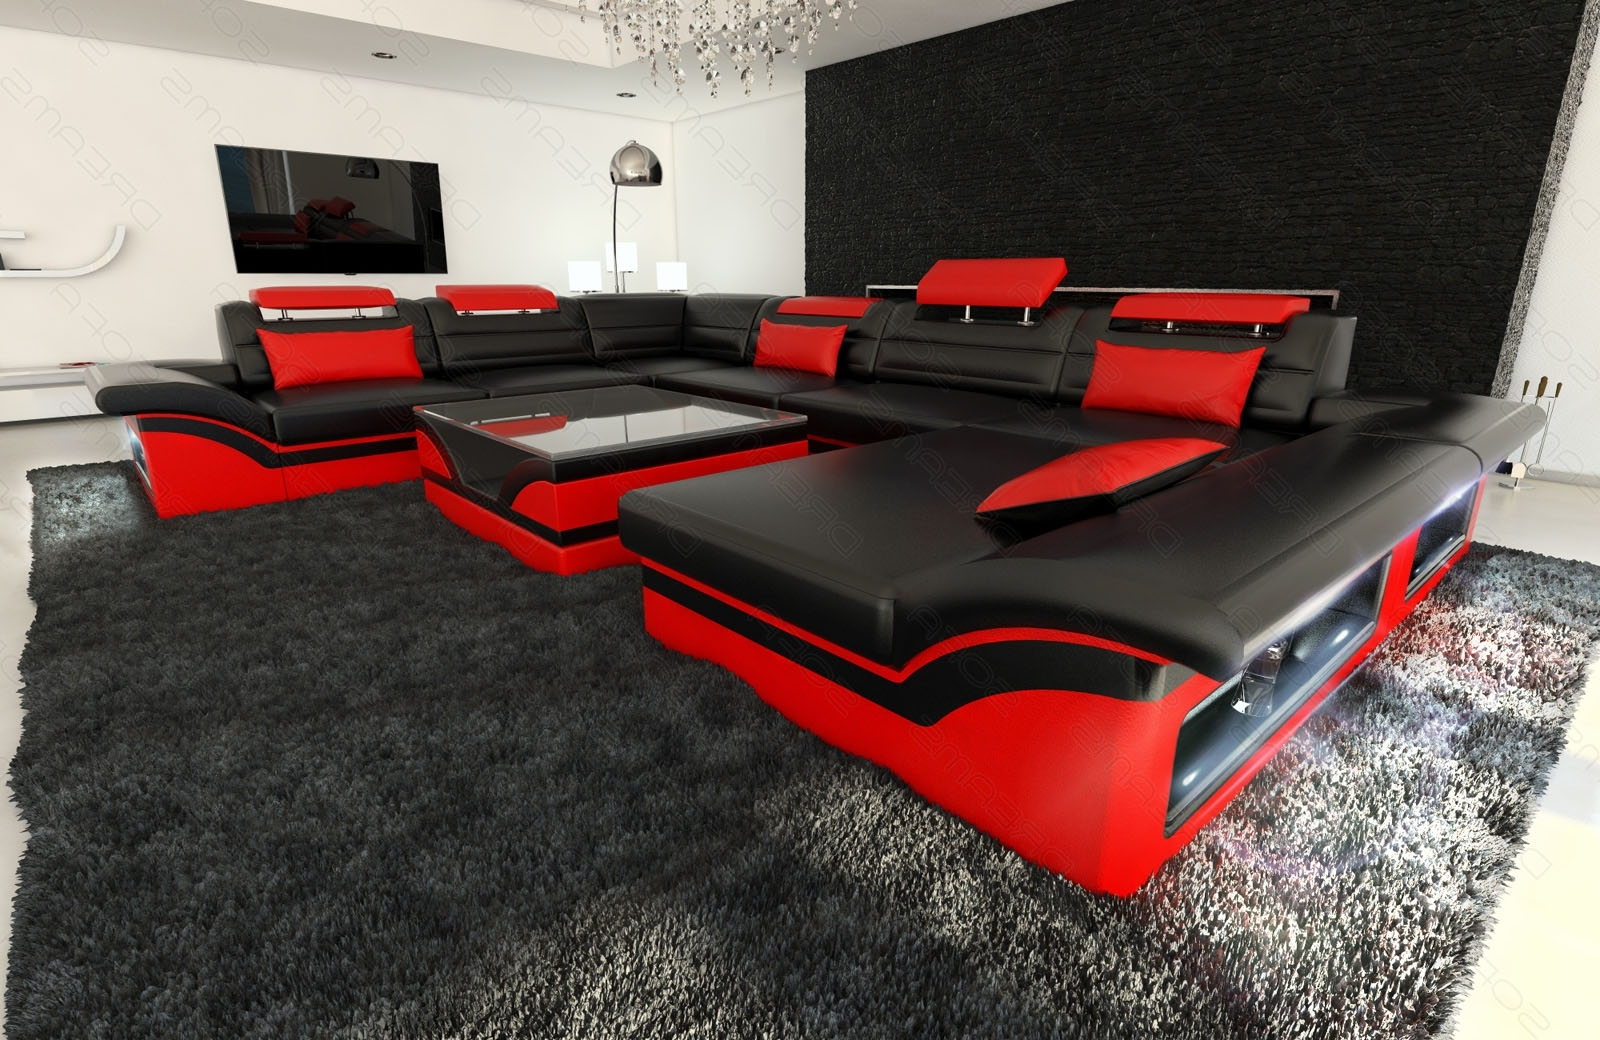 2019 Red And Black Sectional Sofa – Hotelsbacau Throughout Red Black Sectional Sofas (View 1 of 20)